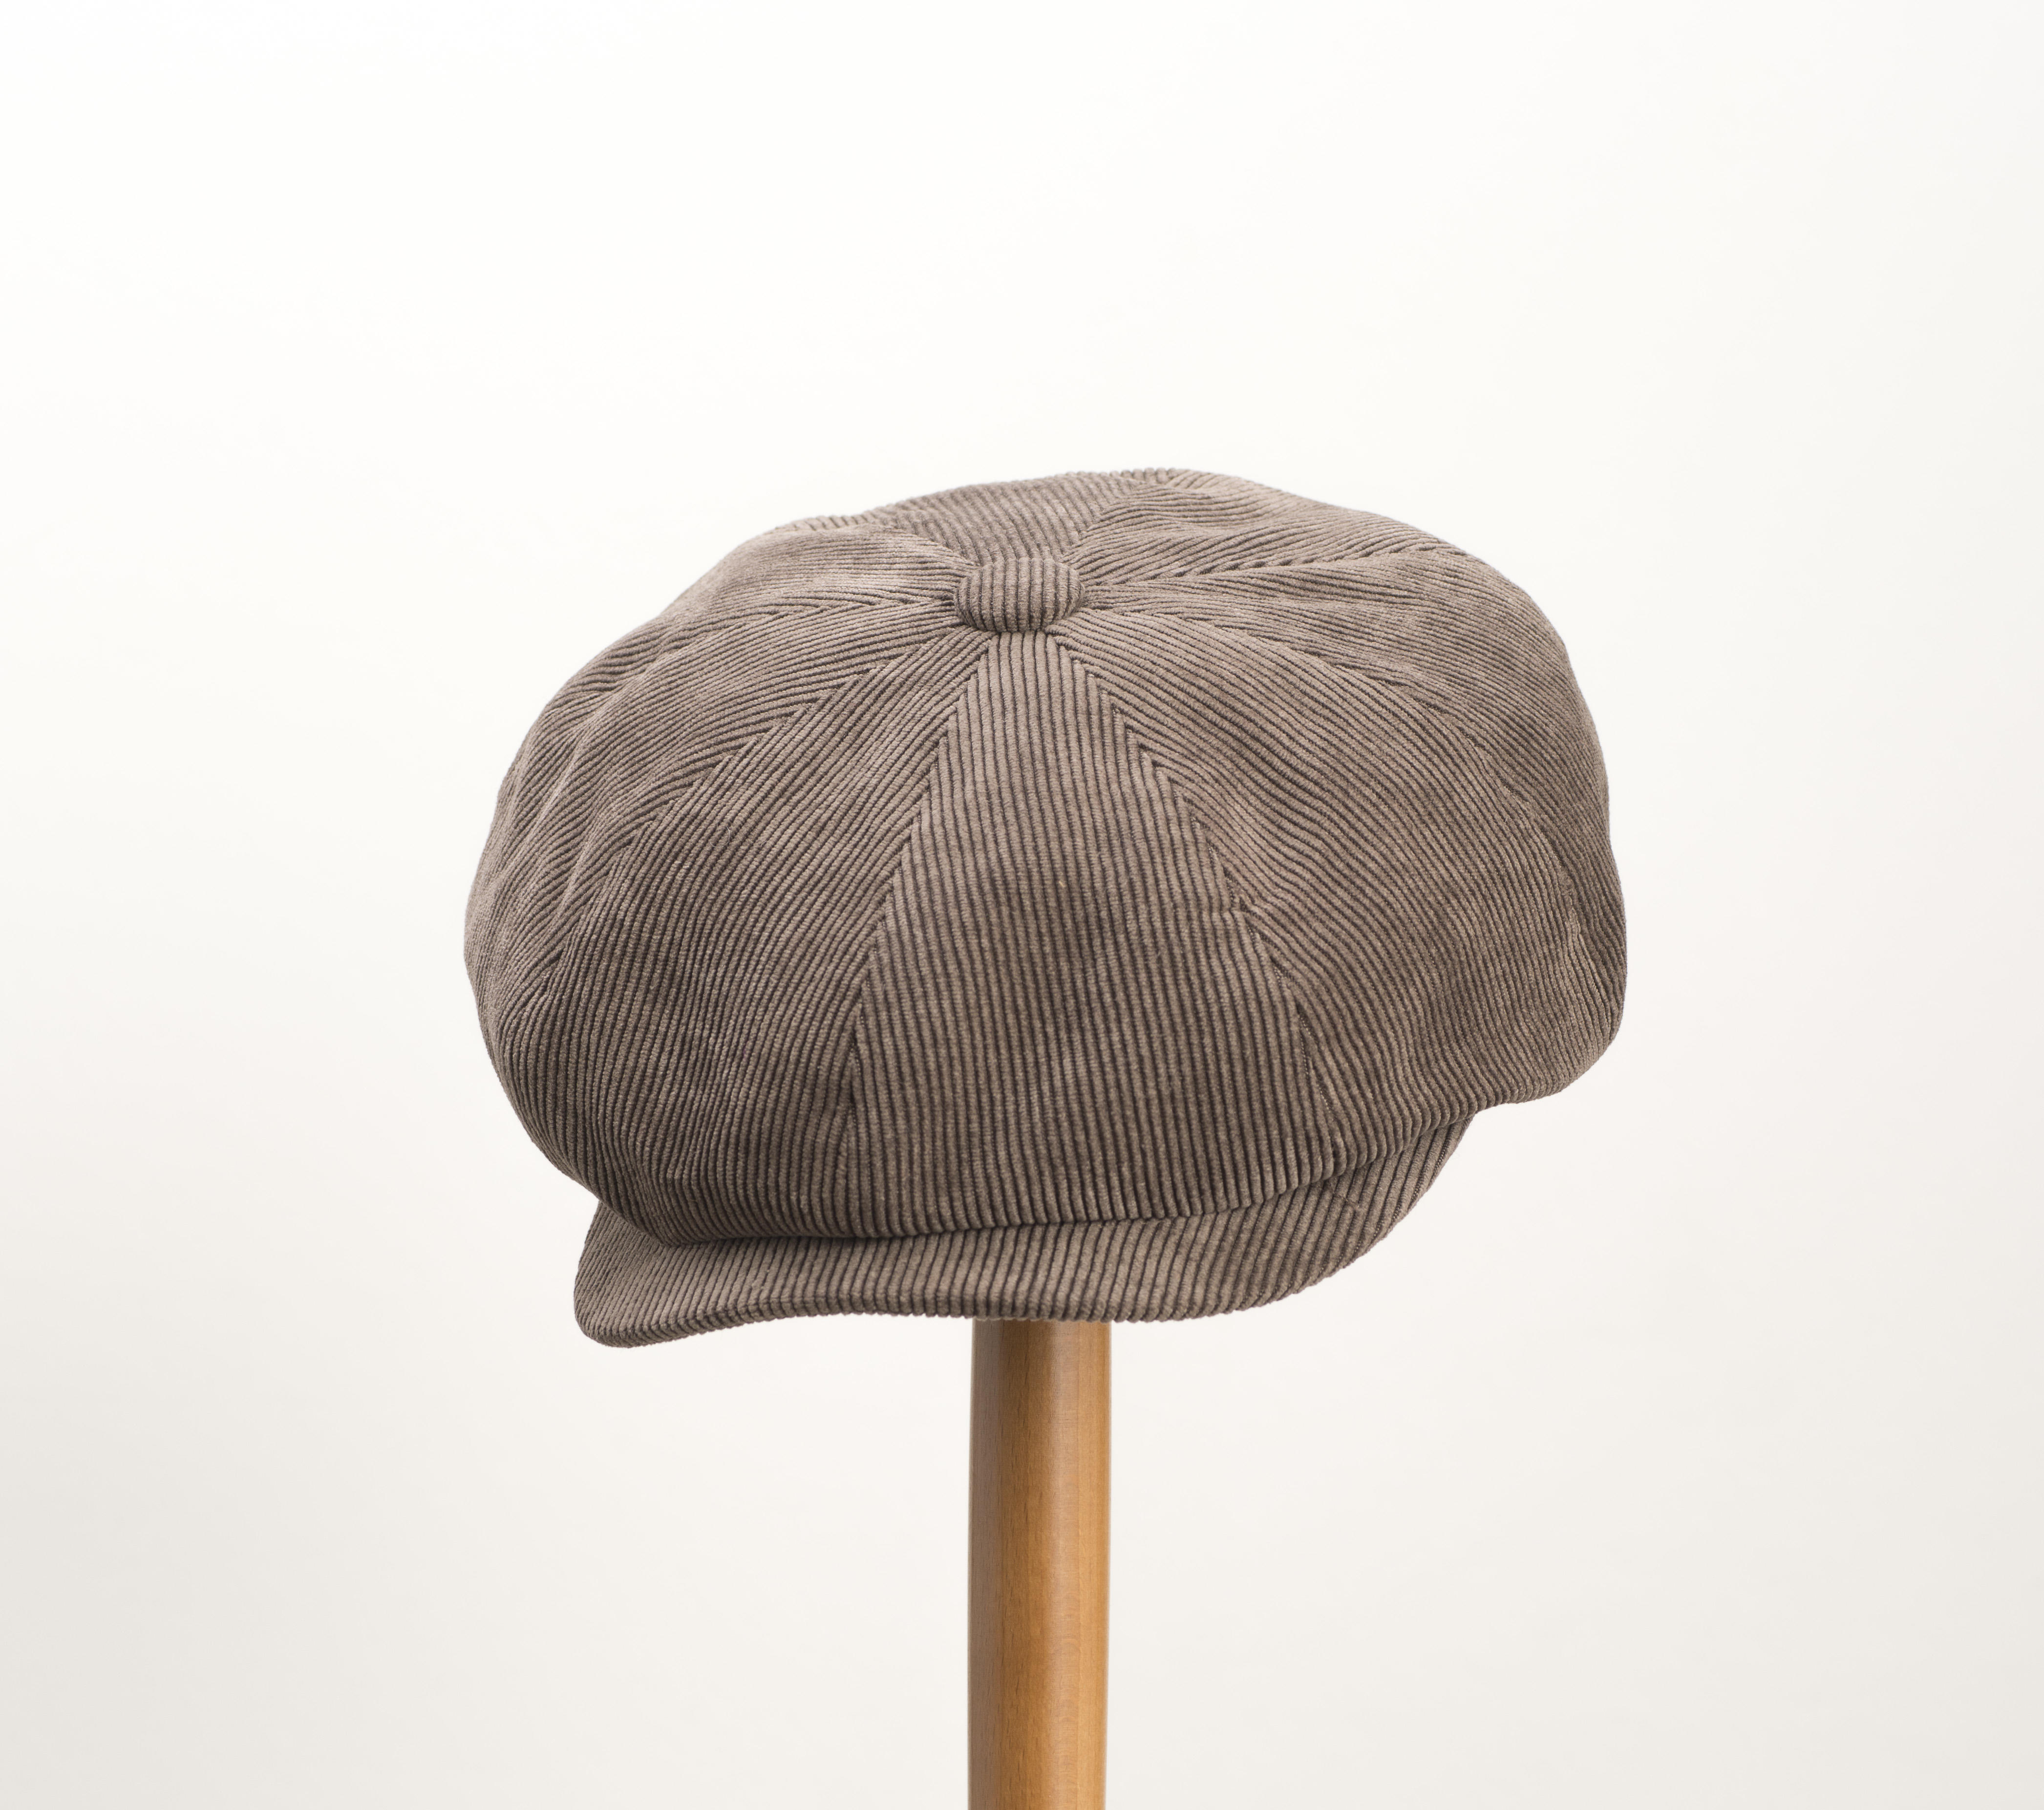 Whiteley Corduroy Newsboy Cap - Sable